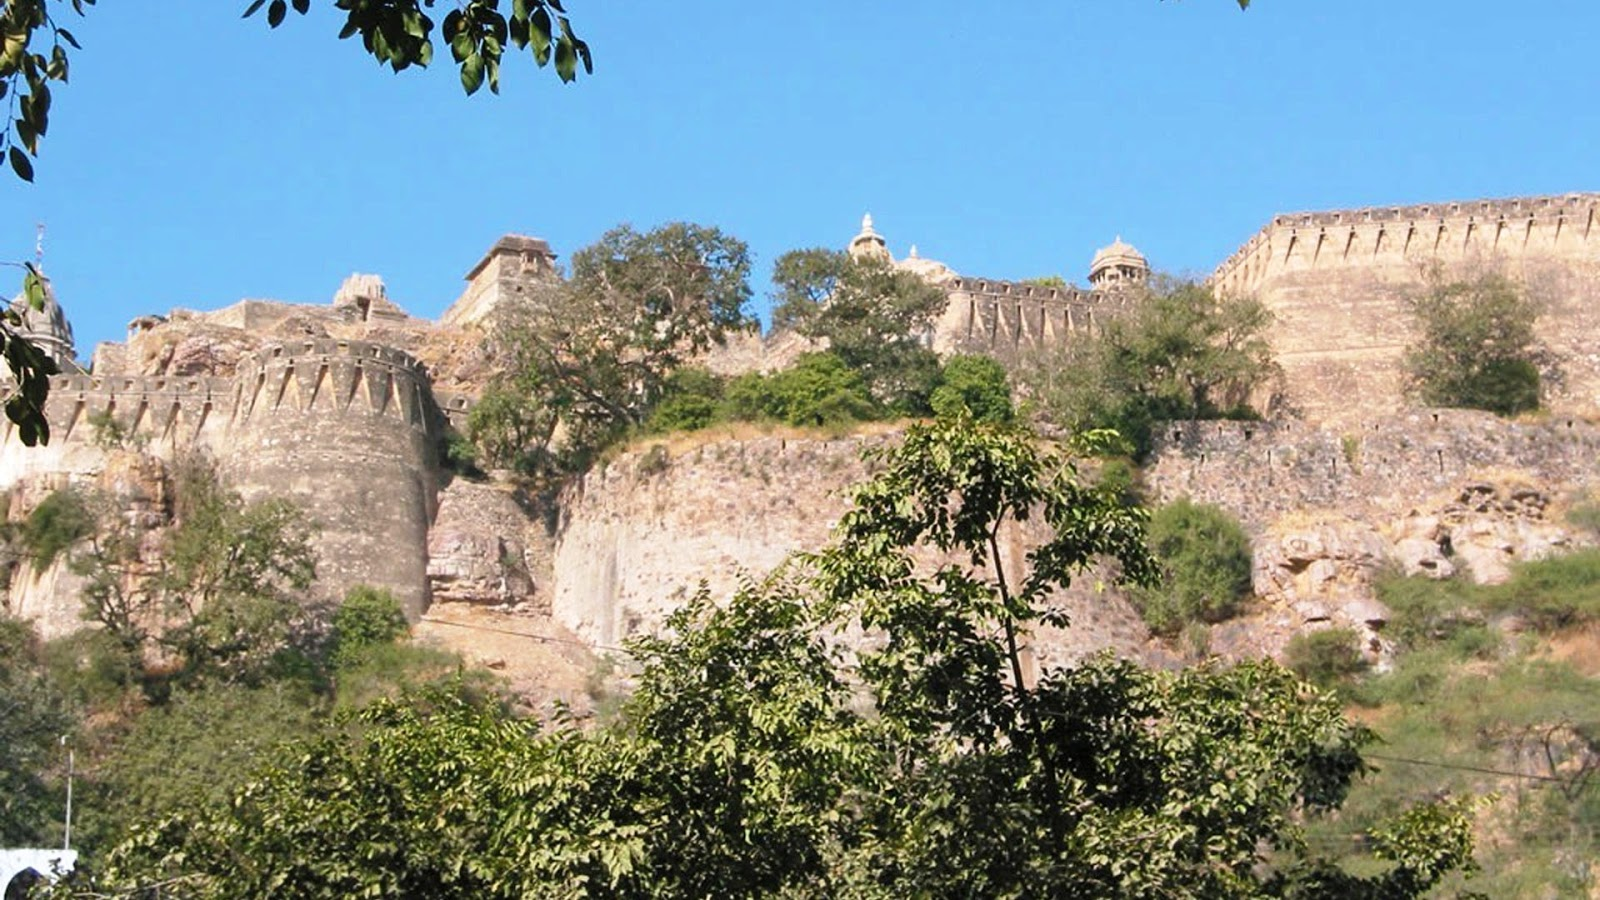 Chittorgarh India  City new picture : Chittorgarh fort Rajasthan India | Fort Chittorgarh | Timings | Images ...